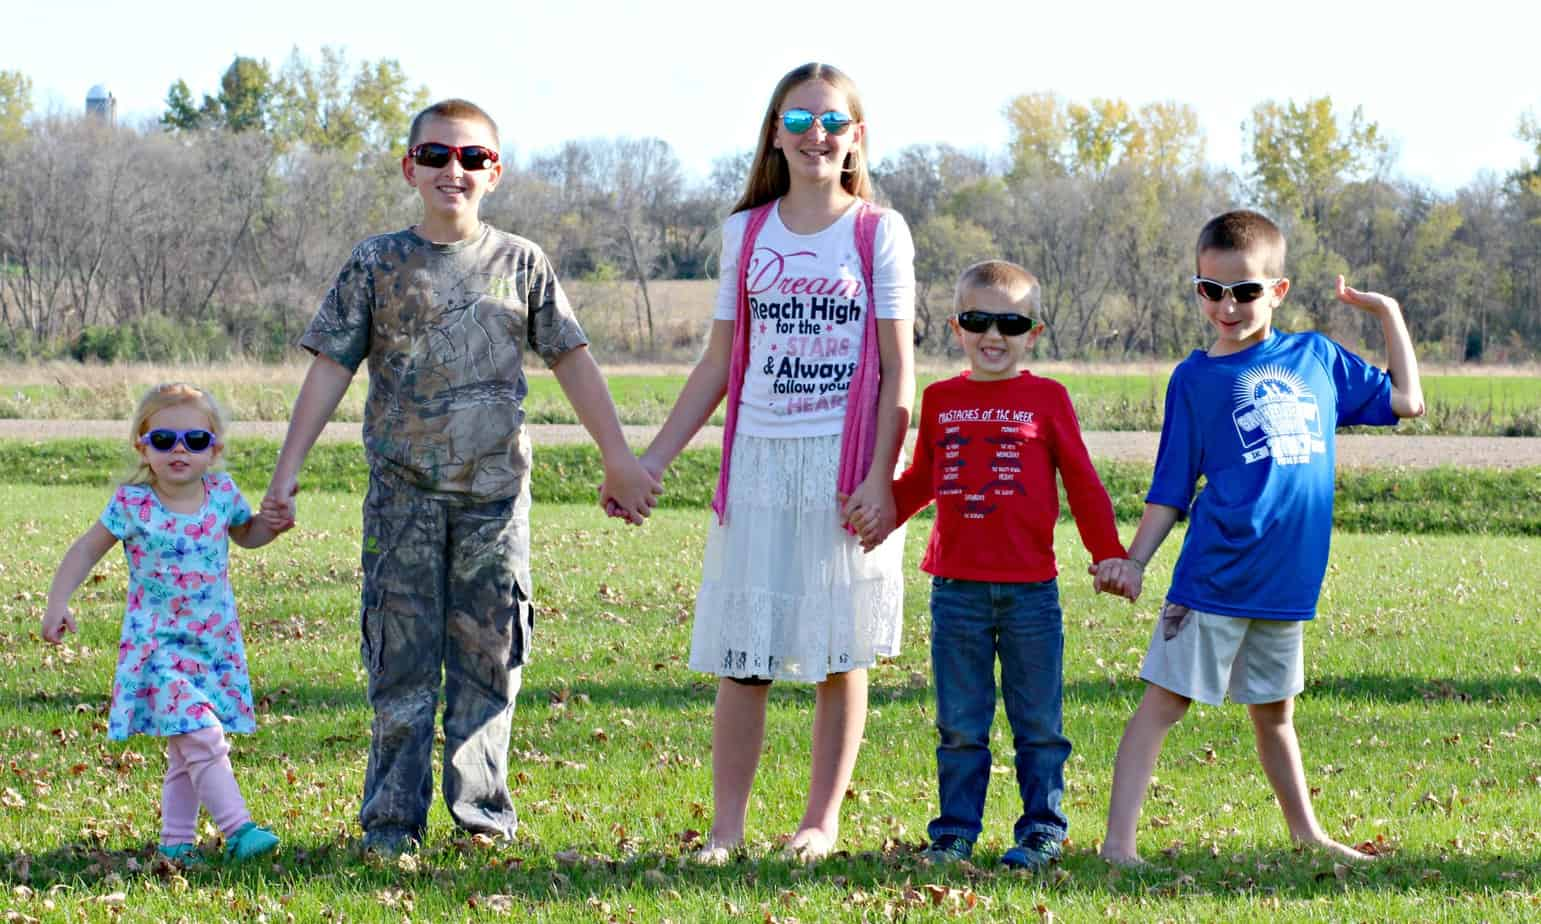 Real Shades Sunglasses For Kids & Adults